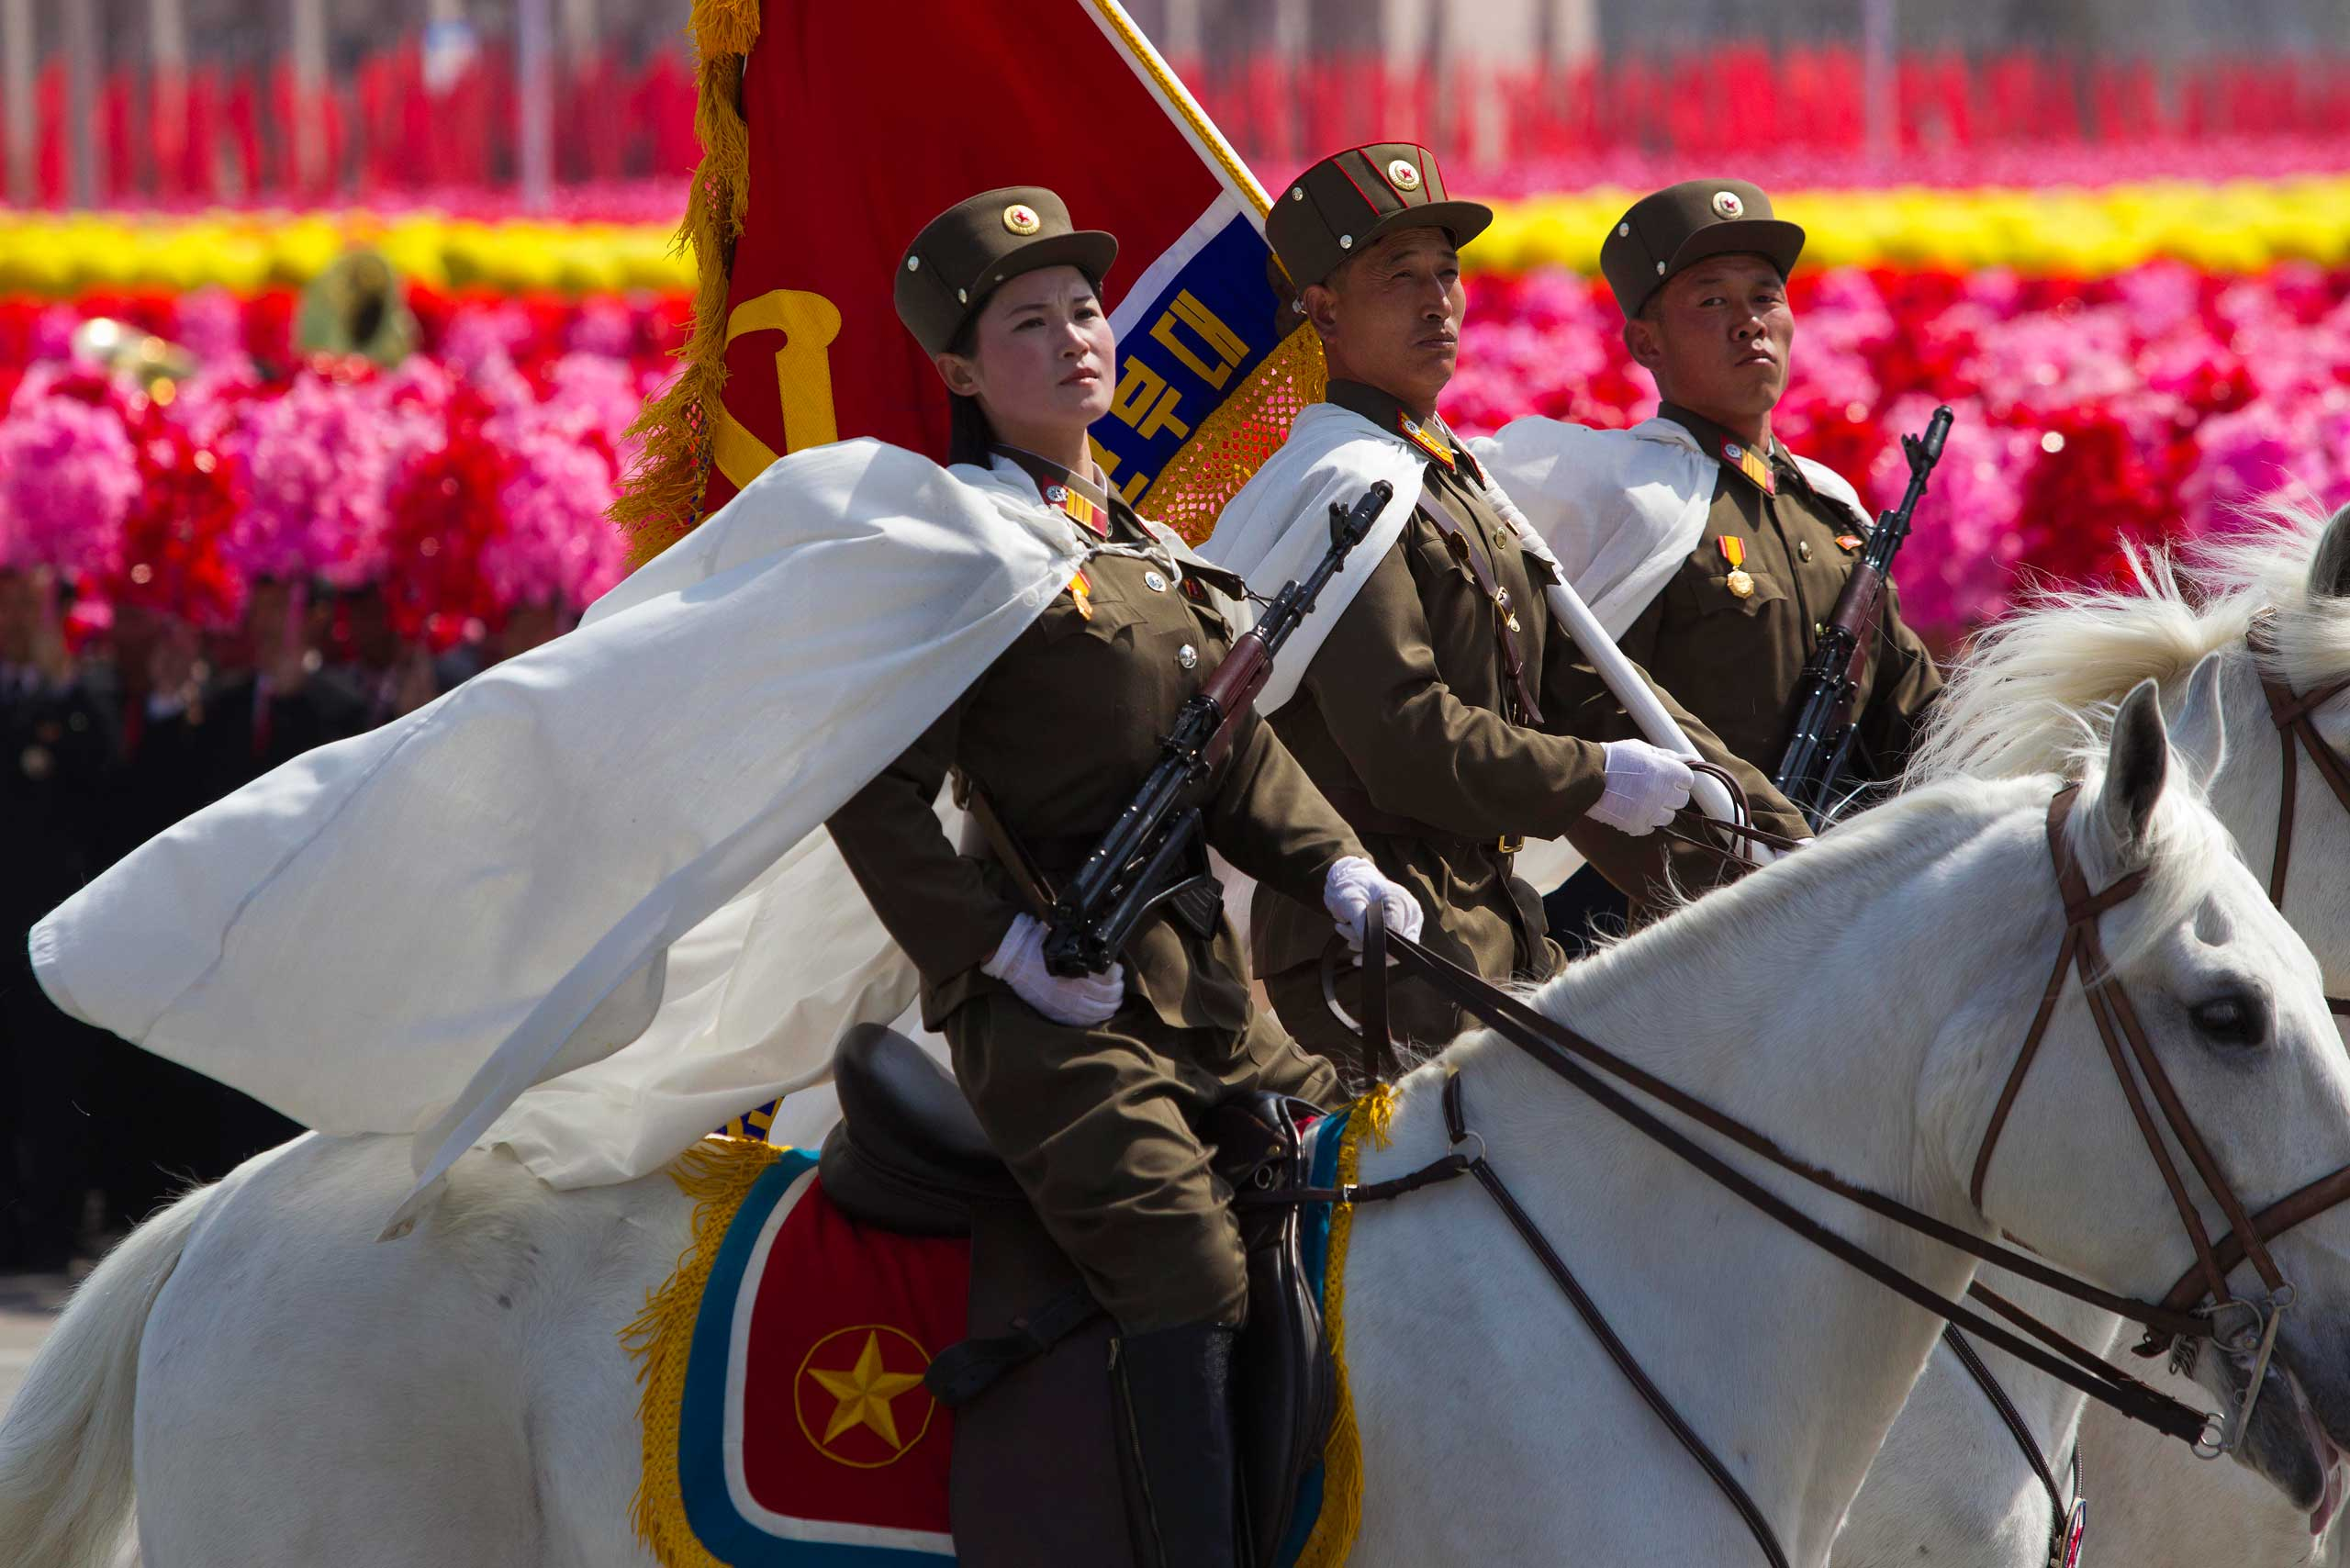 April 15, 2012. North Korean soldiers ride by on horses in front of flower waving civilians during a mass military parade in Pyongyang's Kim Il-Sung Square to celebrate 100 years since the birth of the late North Korean founder Kim Il-Sung.